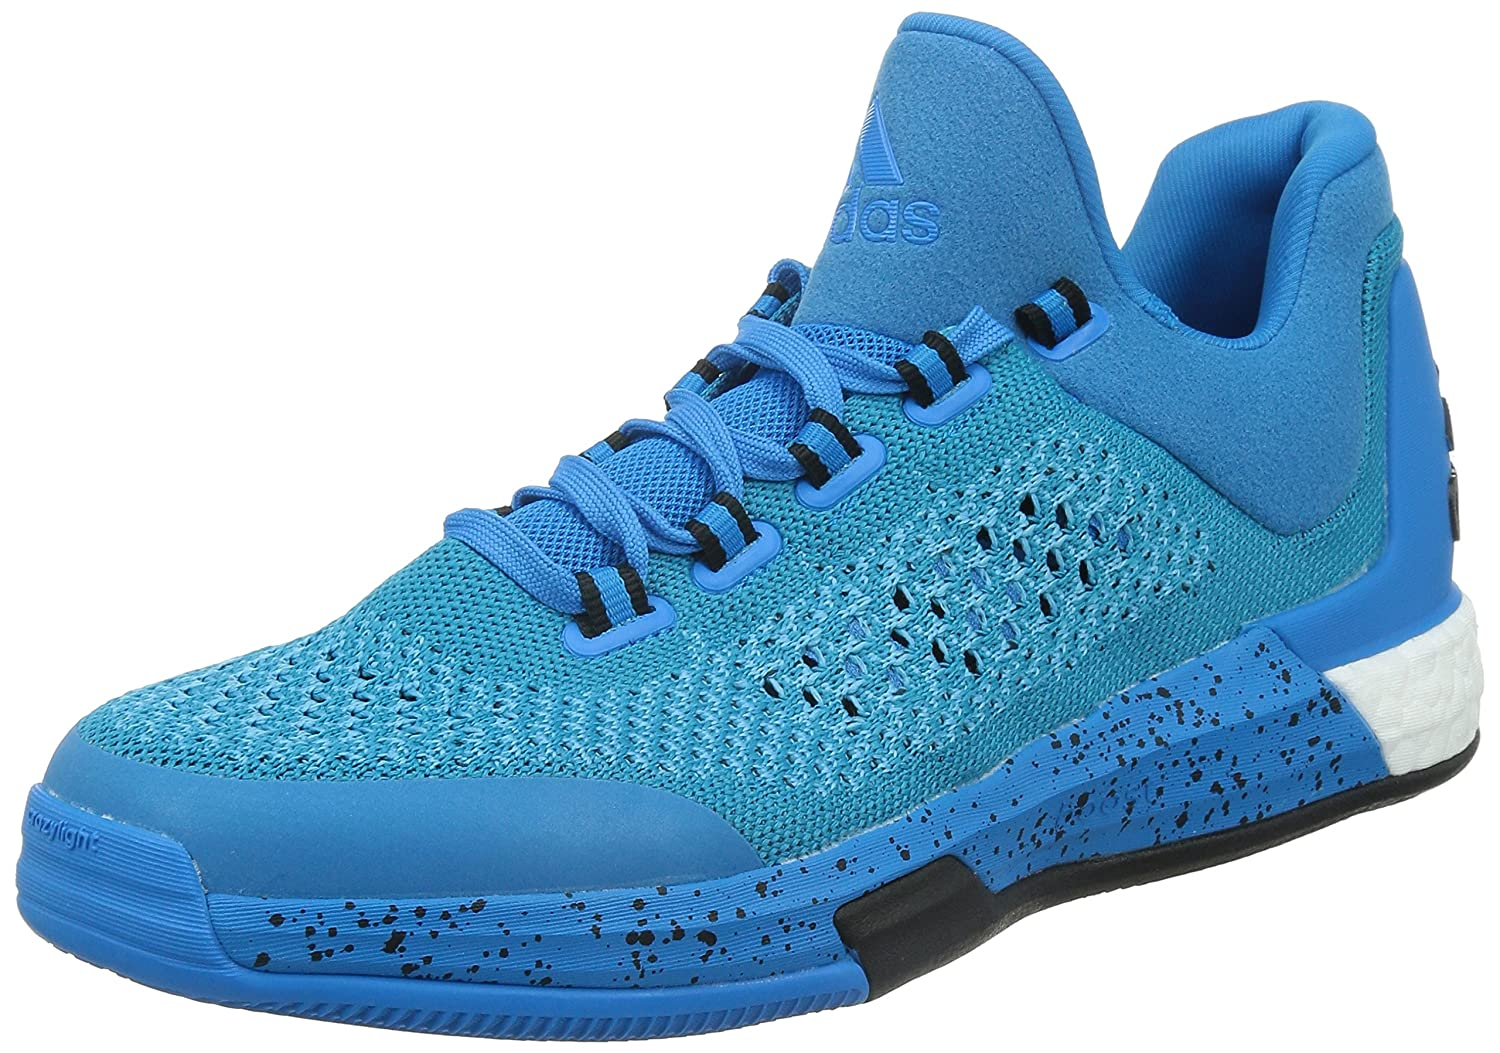 adidas 2015 crazylight boost primeknit basketball shoes ...